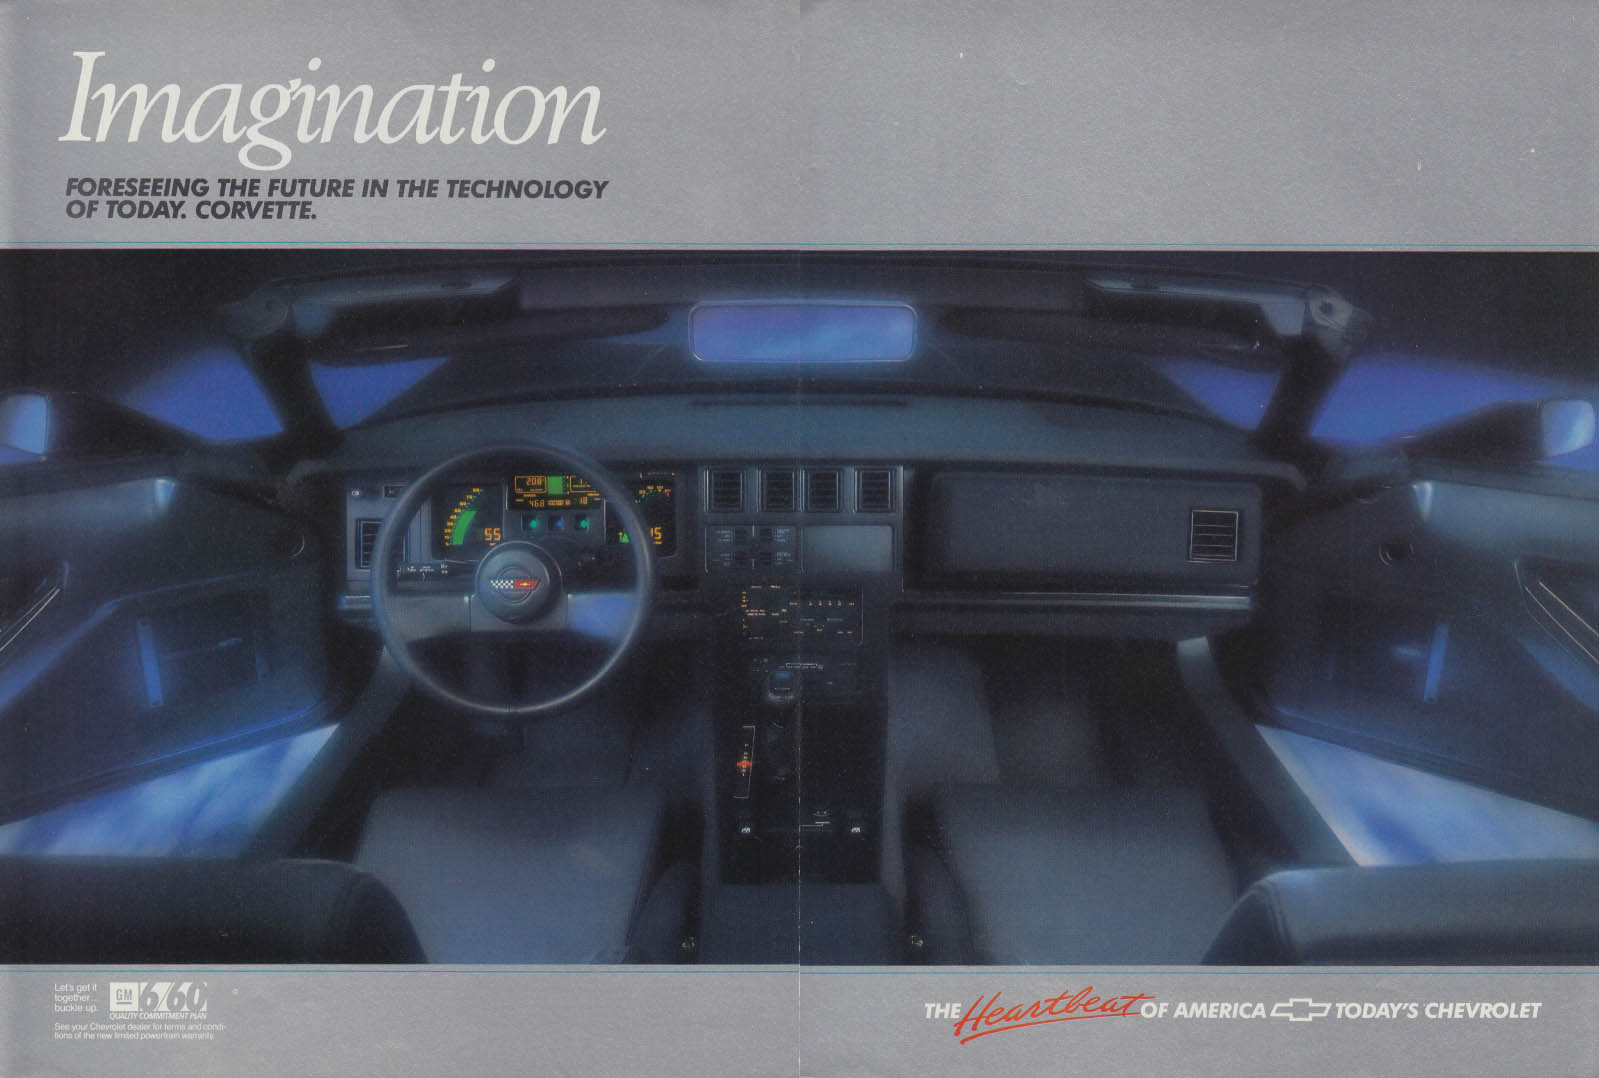 Imagination - Forseeing the future in technology today Corvette ad 1987